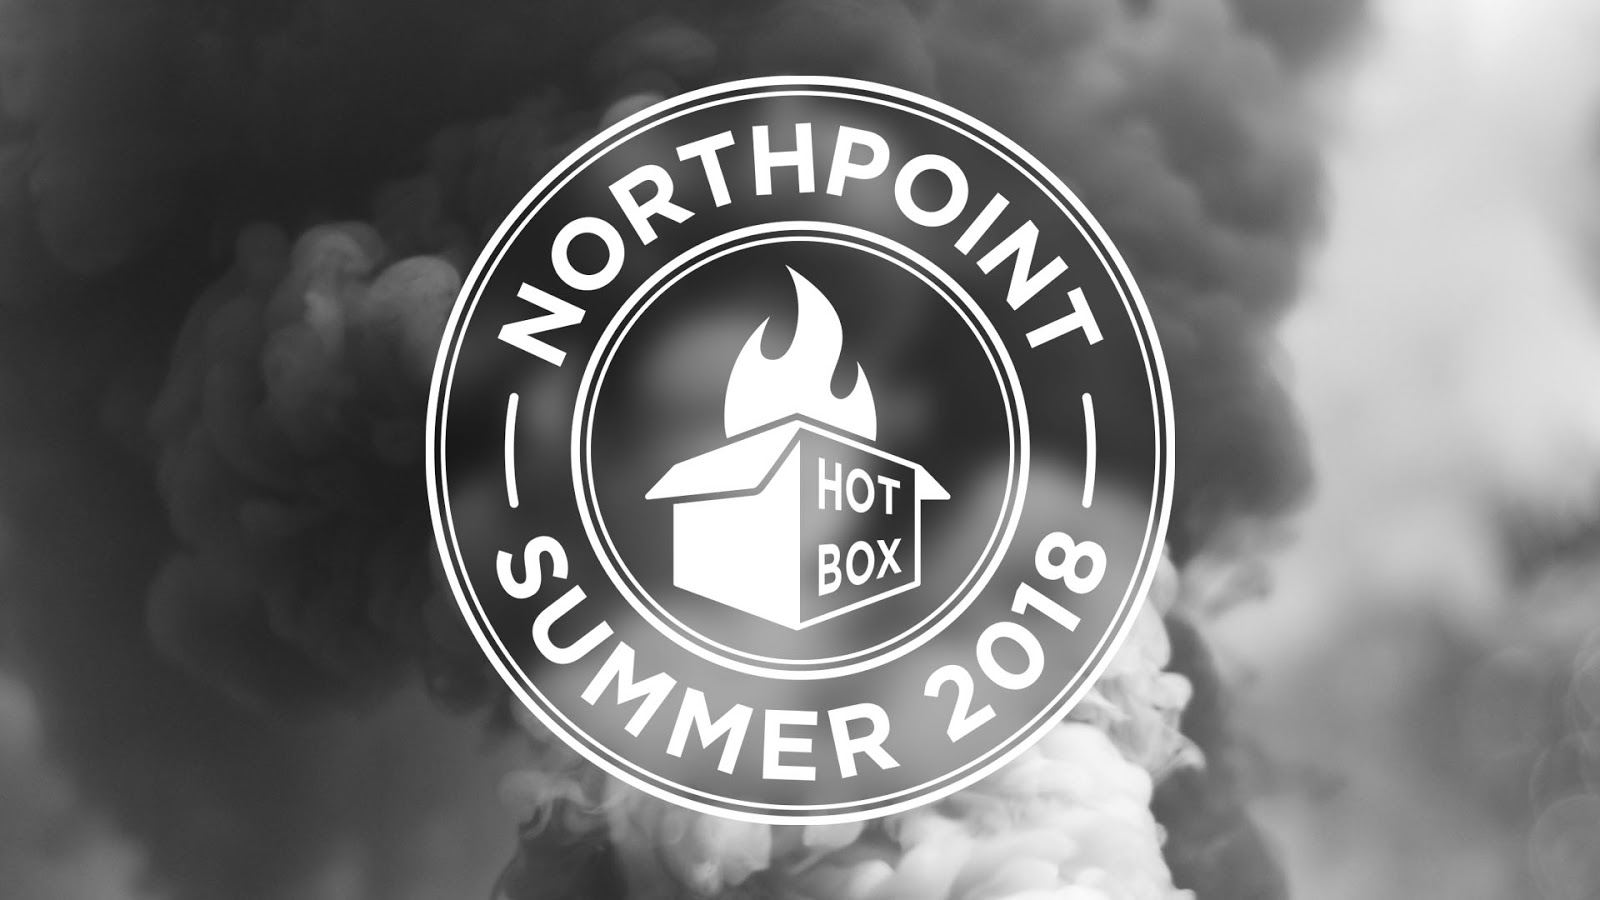 NorthPoint Hot Box